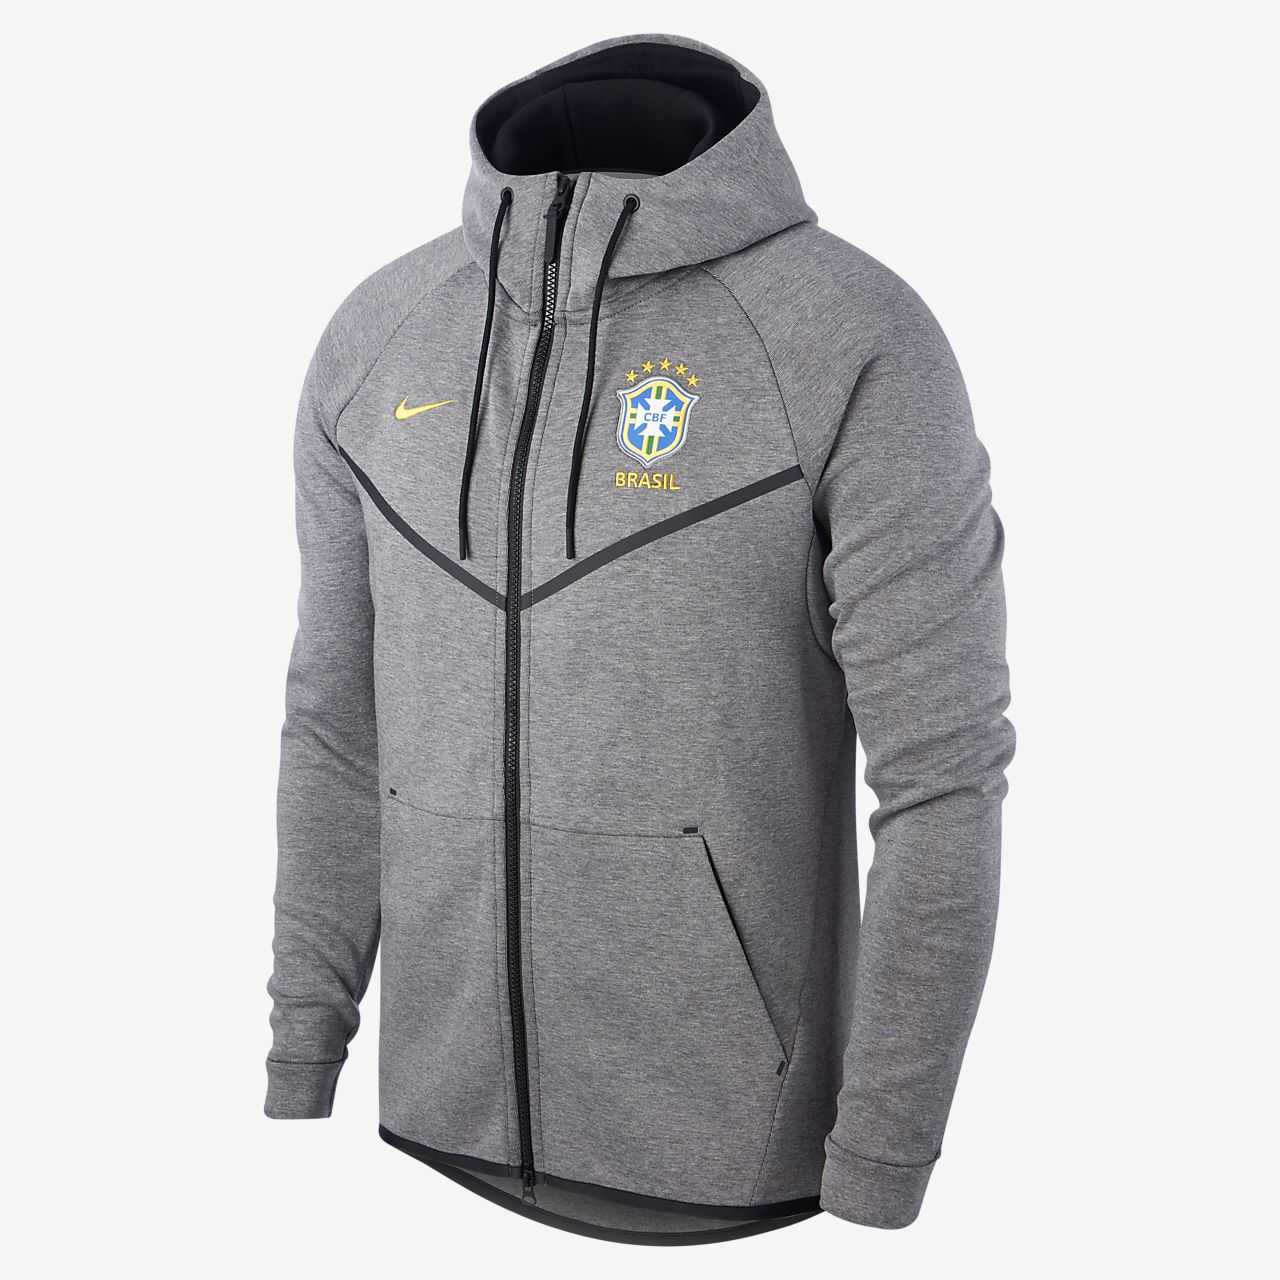 41ba31819e Brazil CBF Tech Fleece Windrunner Men s Jacket. Nike.com NL